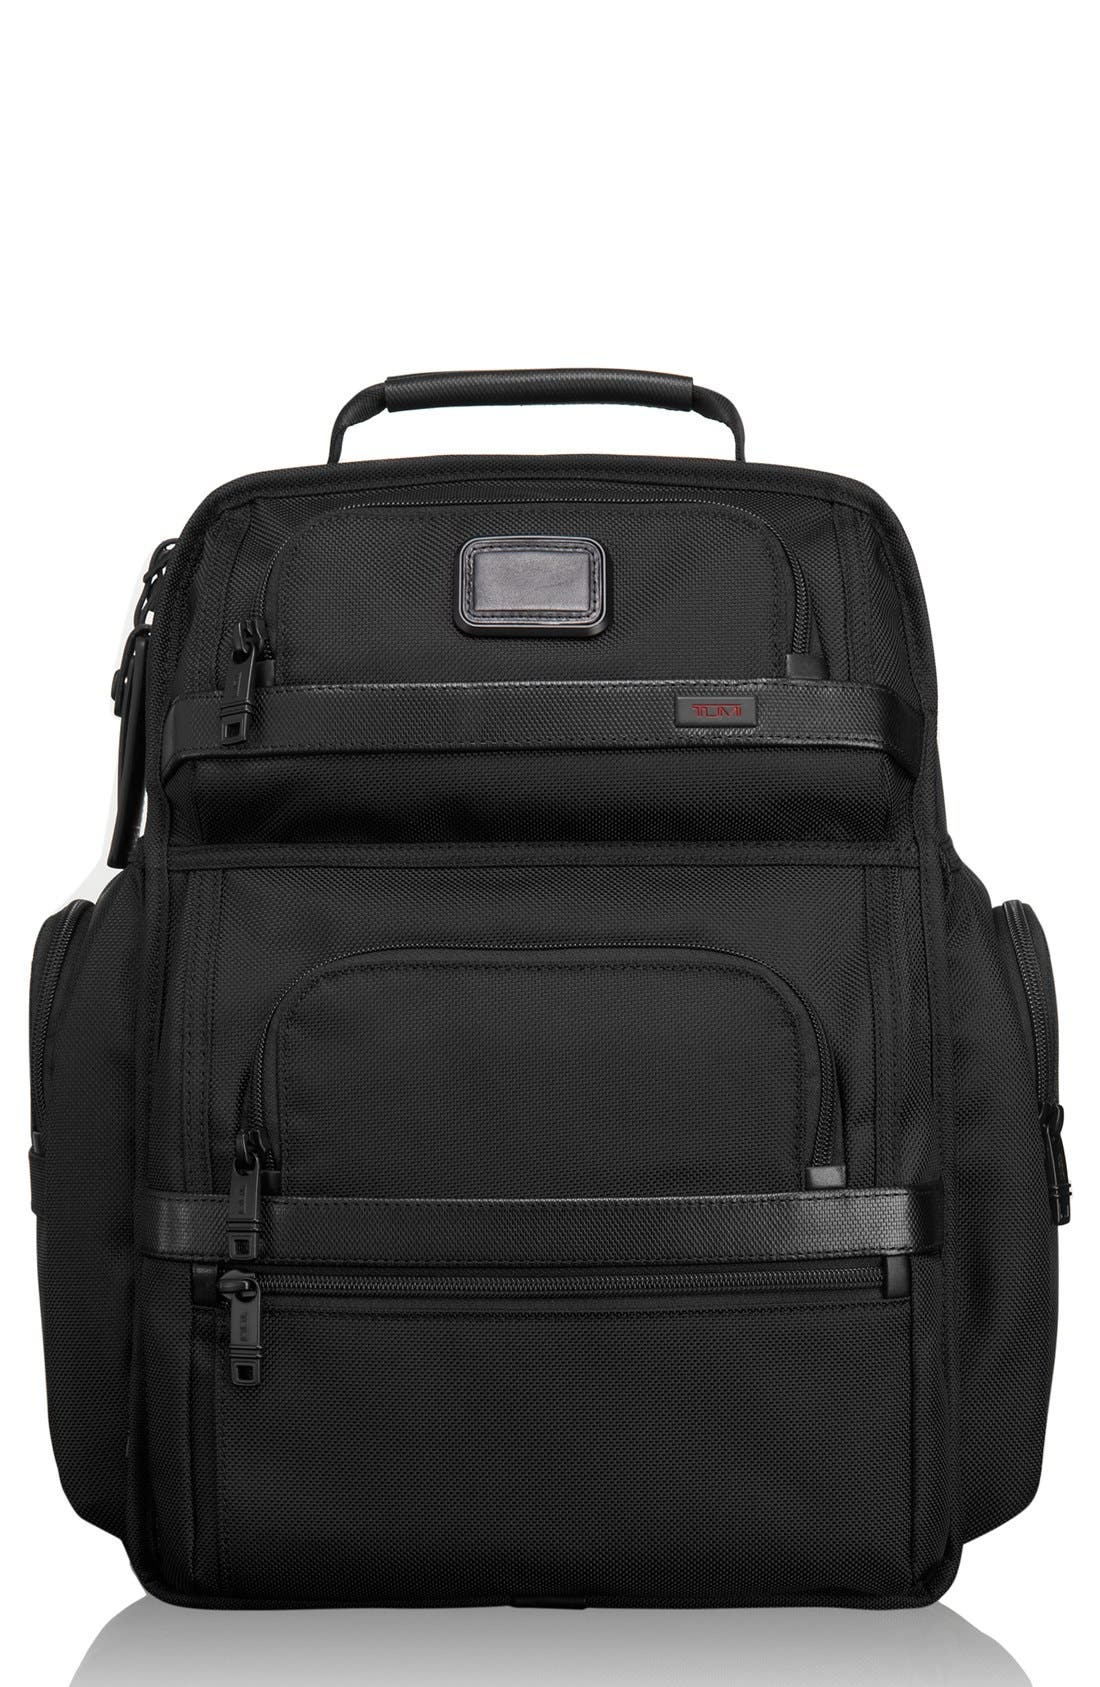 Tumi 'Alpha 2' T-Pass Laptop Brief Pack with Tumi ID Lock Pocket